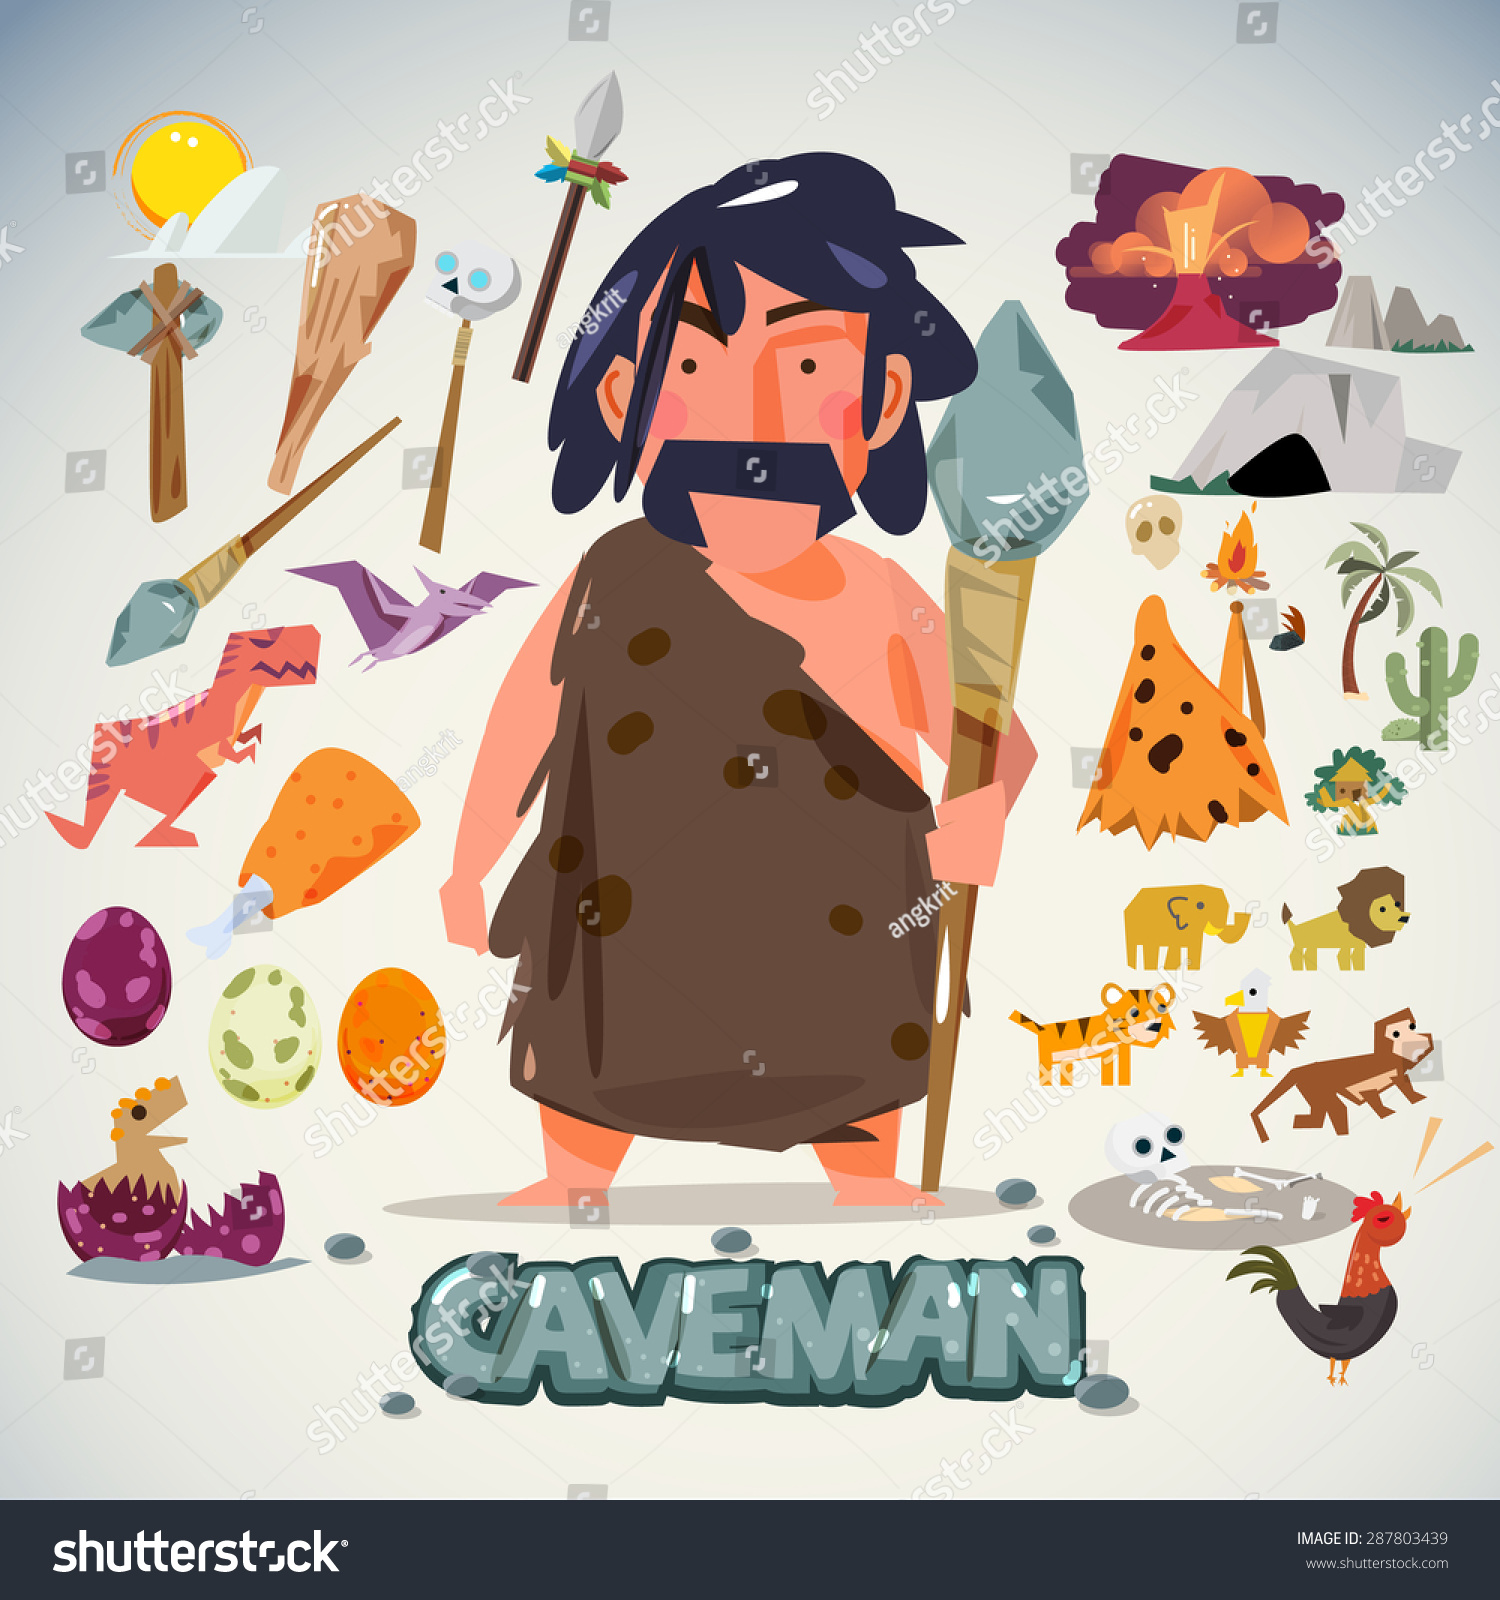 Character Design Tools : Caveman age related keywords suggestions